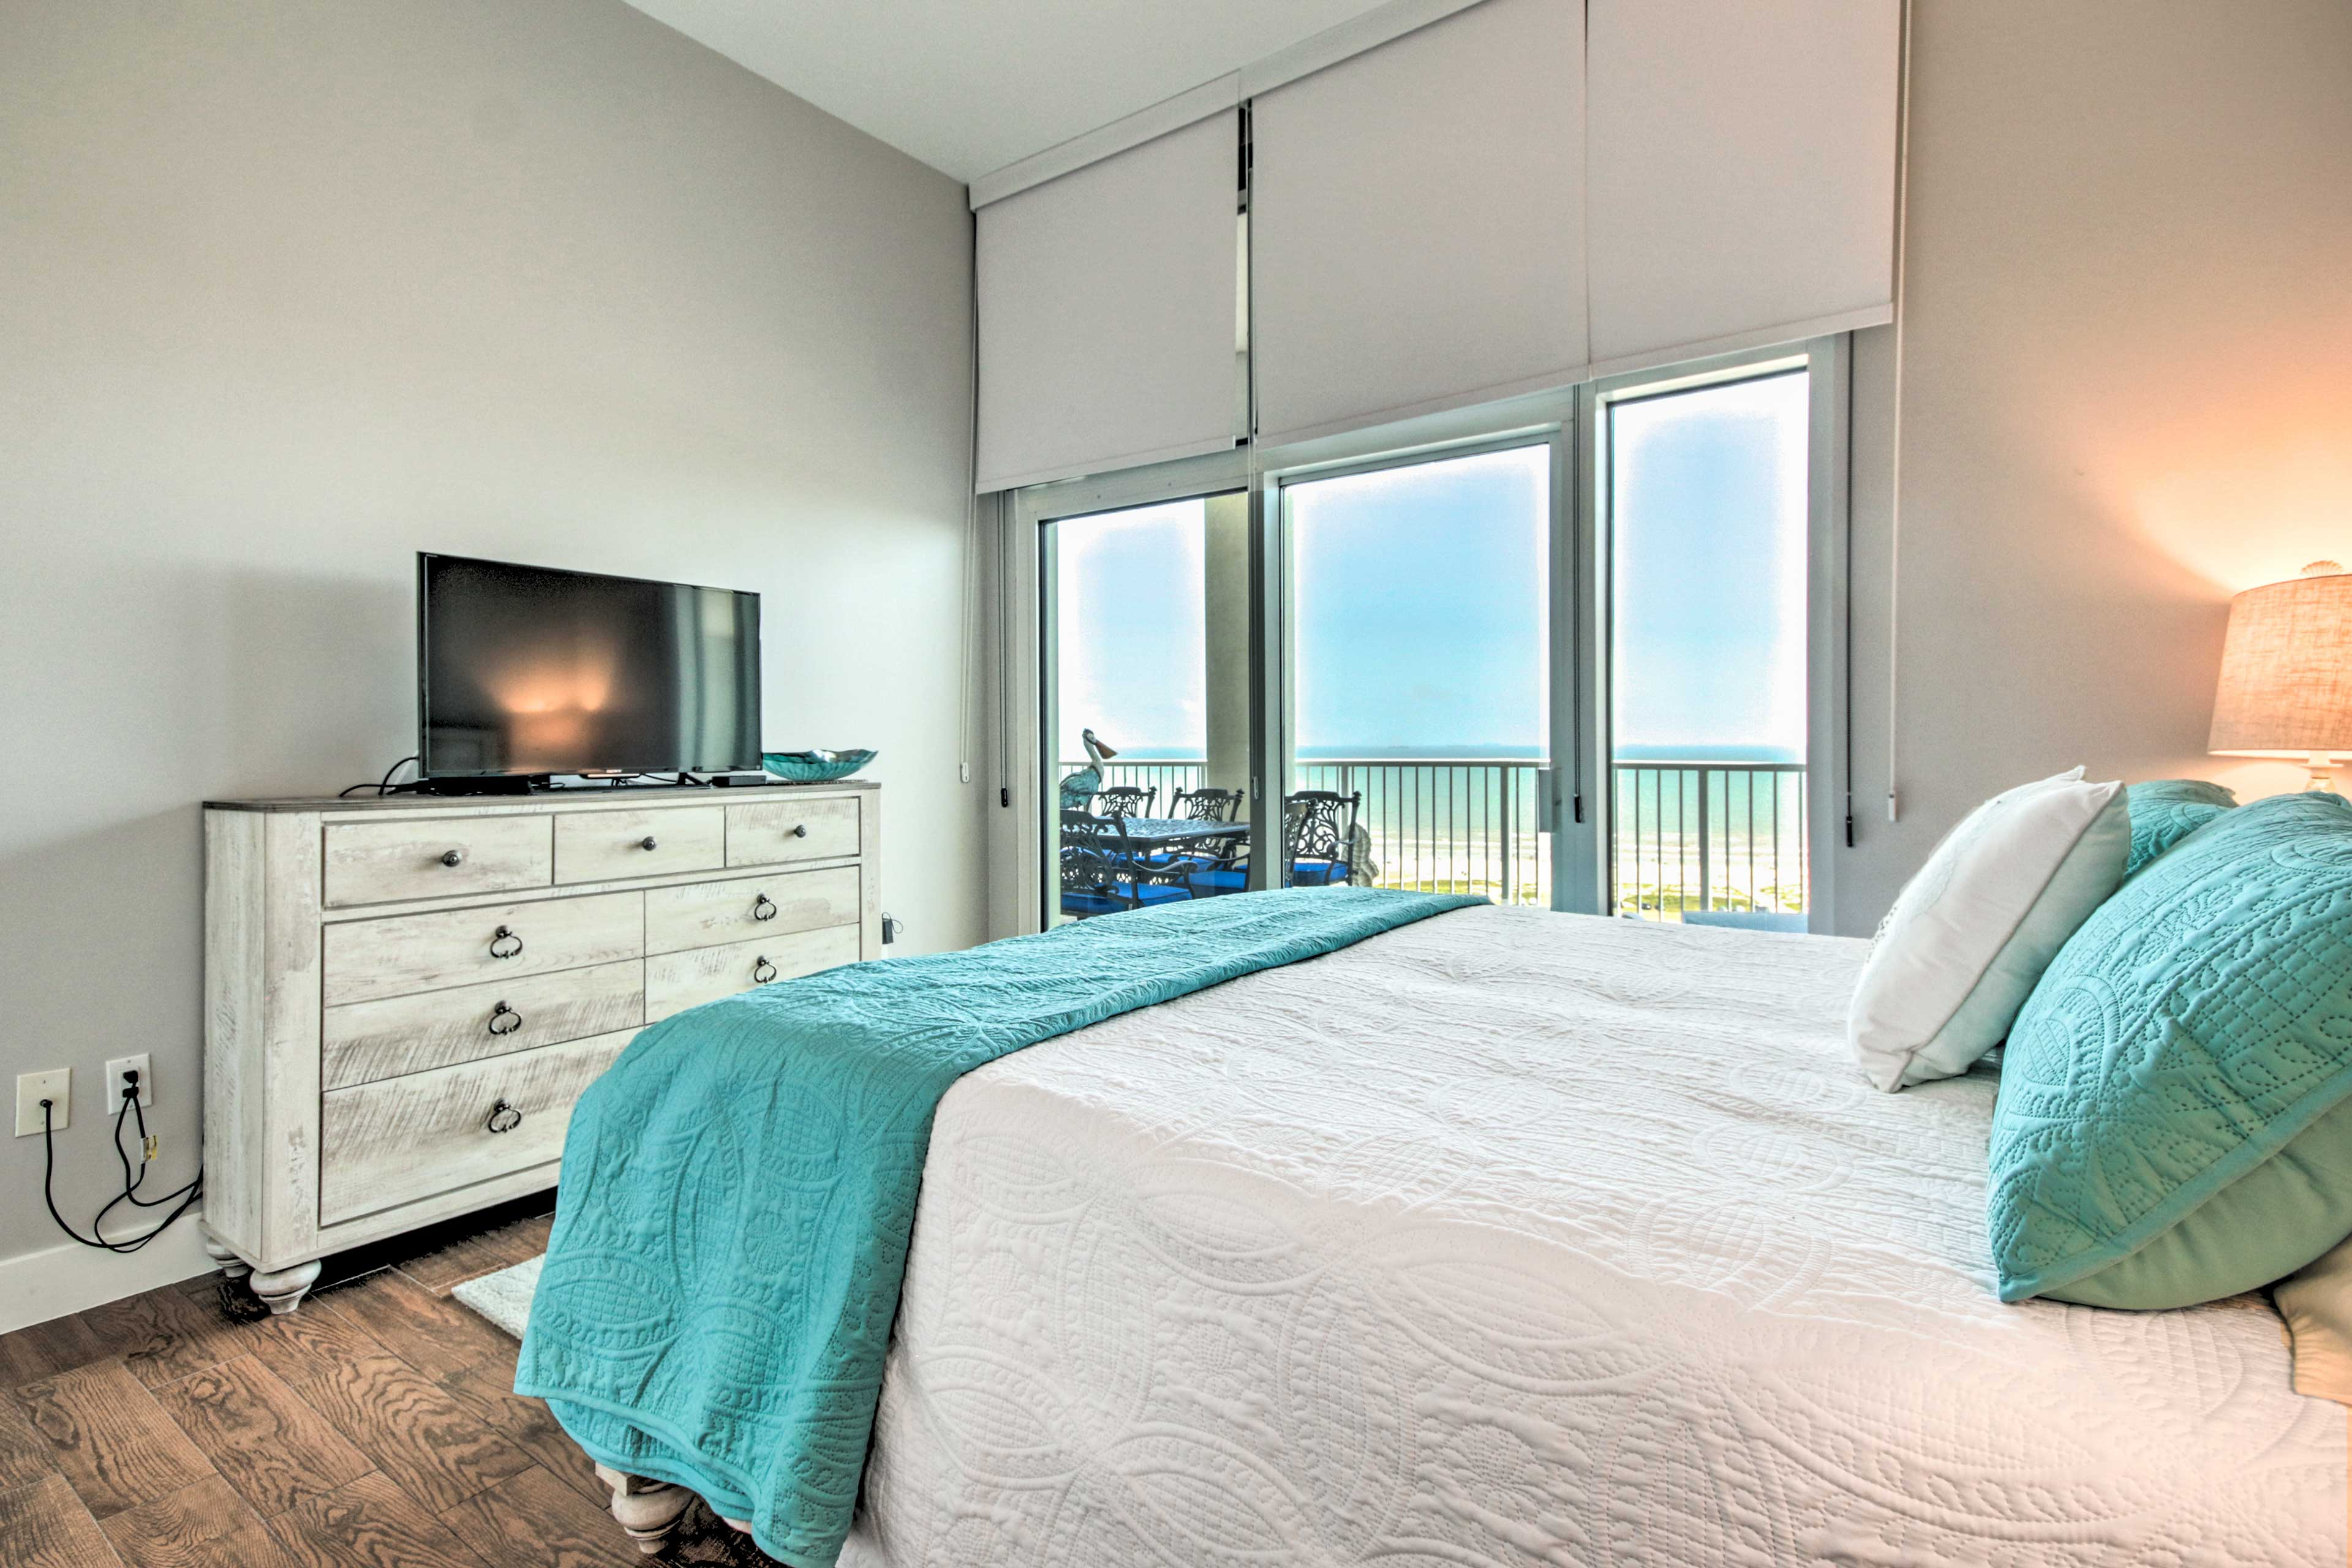 Sink into the king bed in the master bedroom.